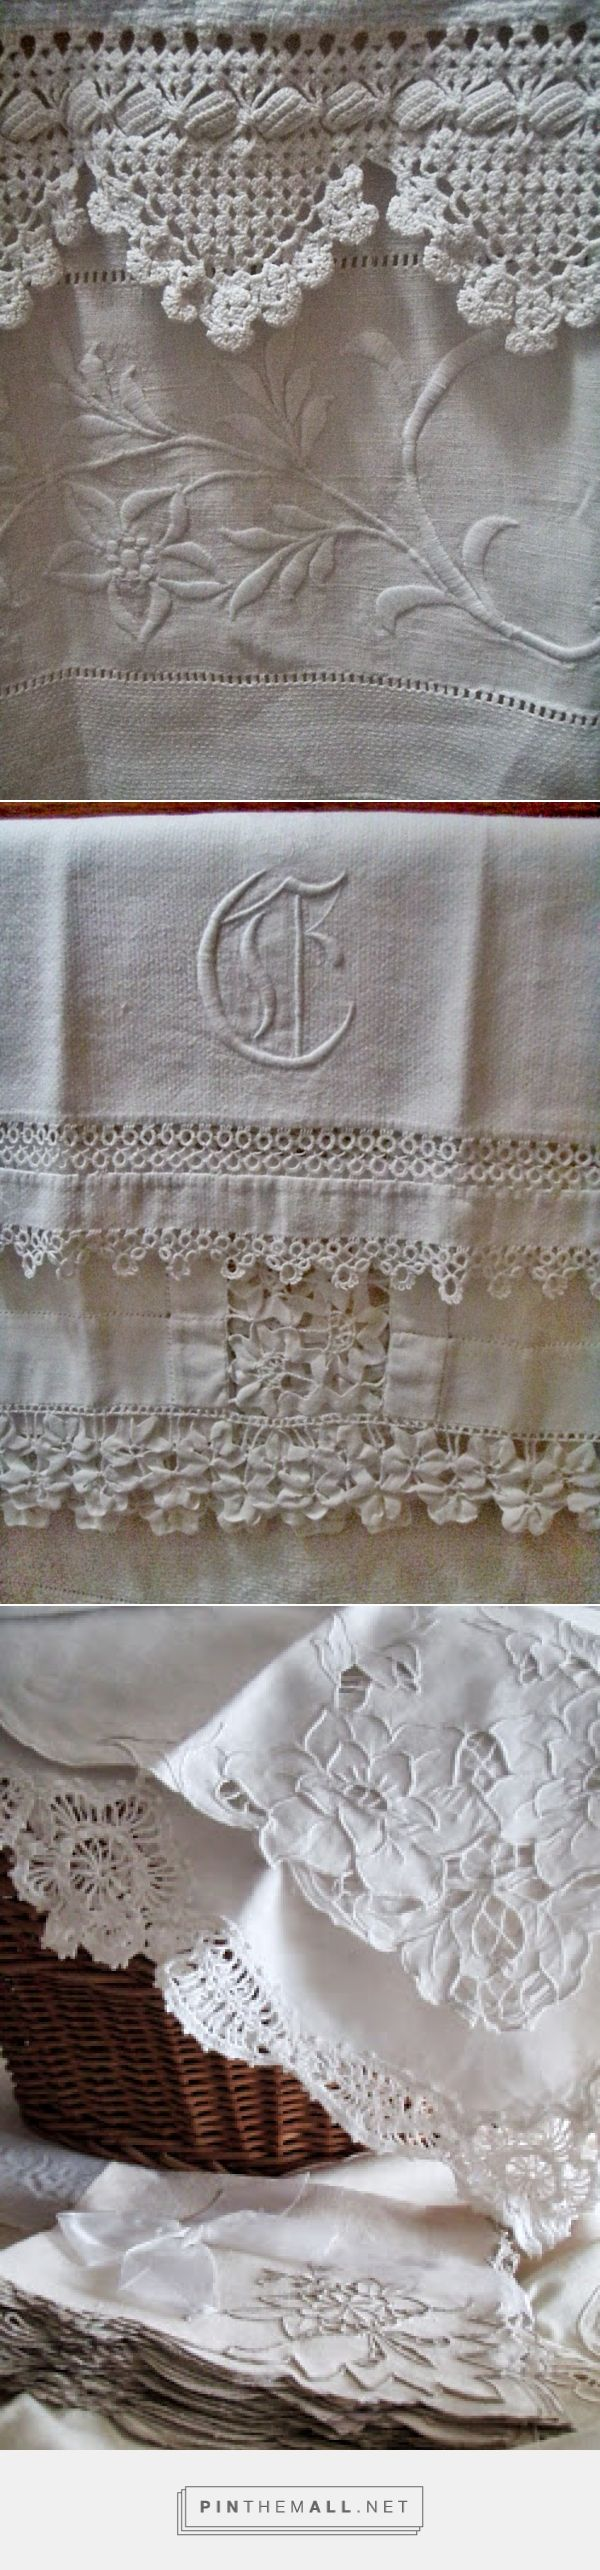 Vintage Bathroom Linens. Monogram, hemstitching and a sumptuous variety of lace in one towel holder: crochet, tatting, rick rack braid, whitework and Richelieu embroidery ༺✿ƬⱤღ  https://www.pinterest.com/teretegui/✿༻